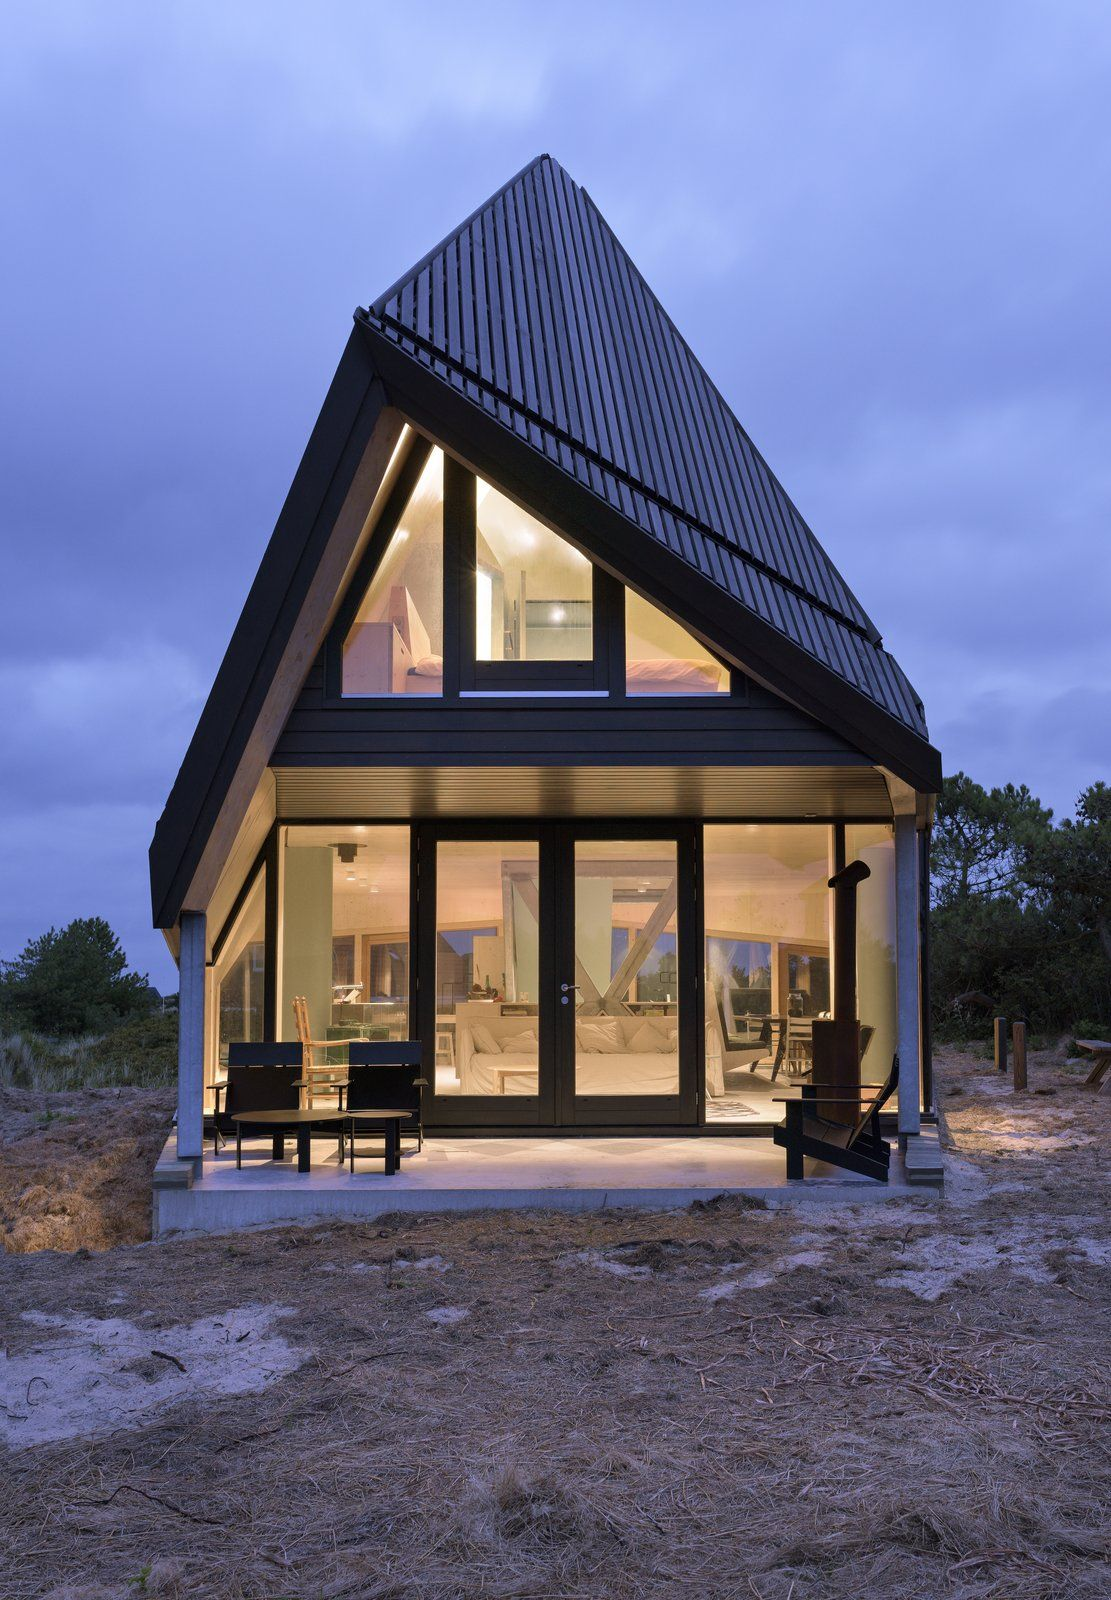 A Tent Shaped Home In The Netherlands Crouches Between Natural Dunes Roof Architecture House Roof Design Architecture